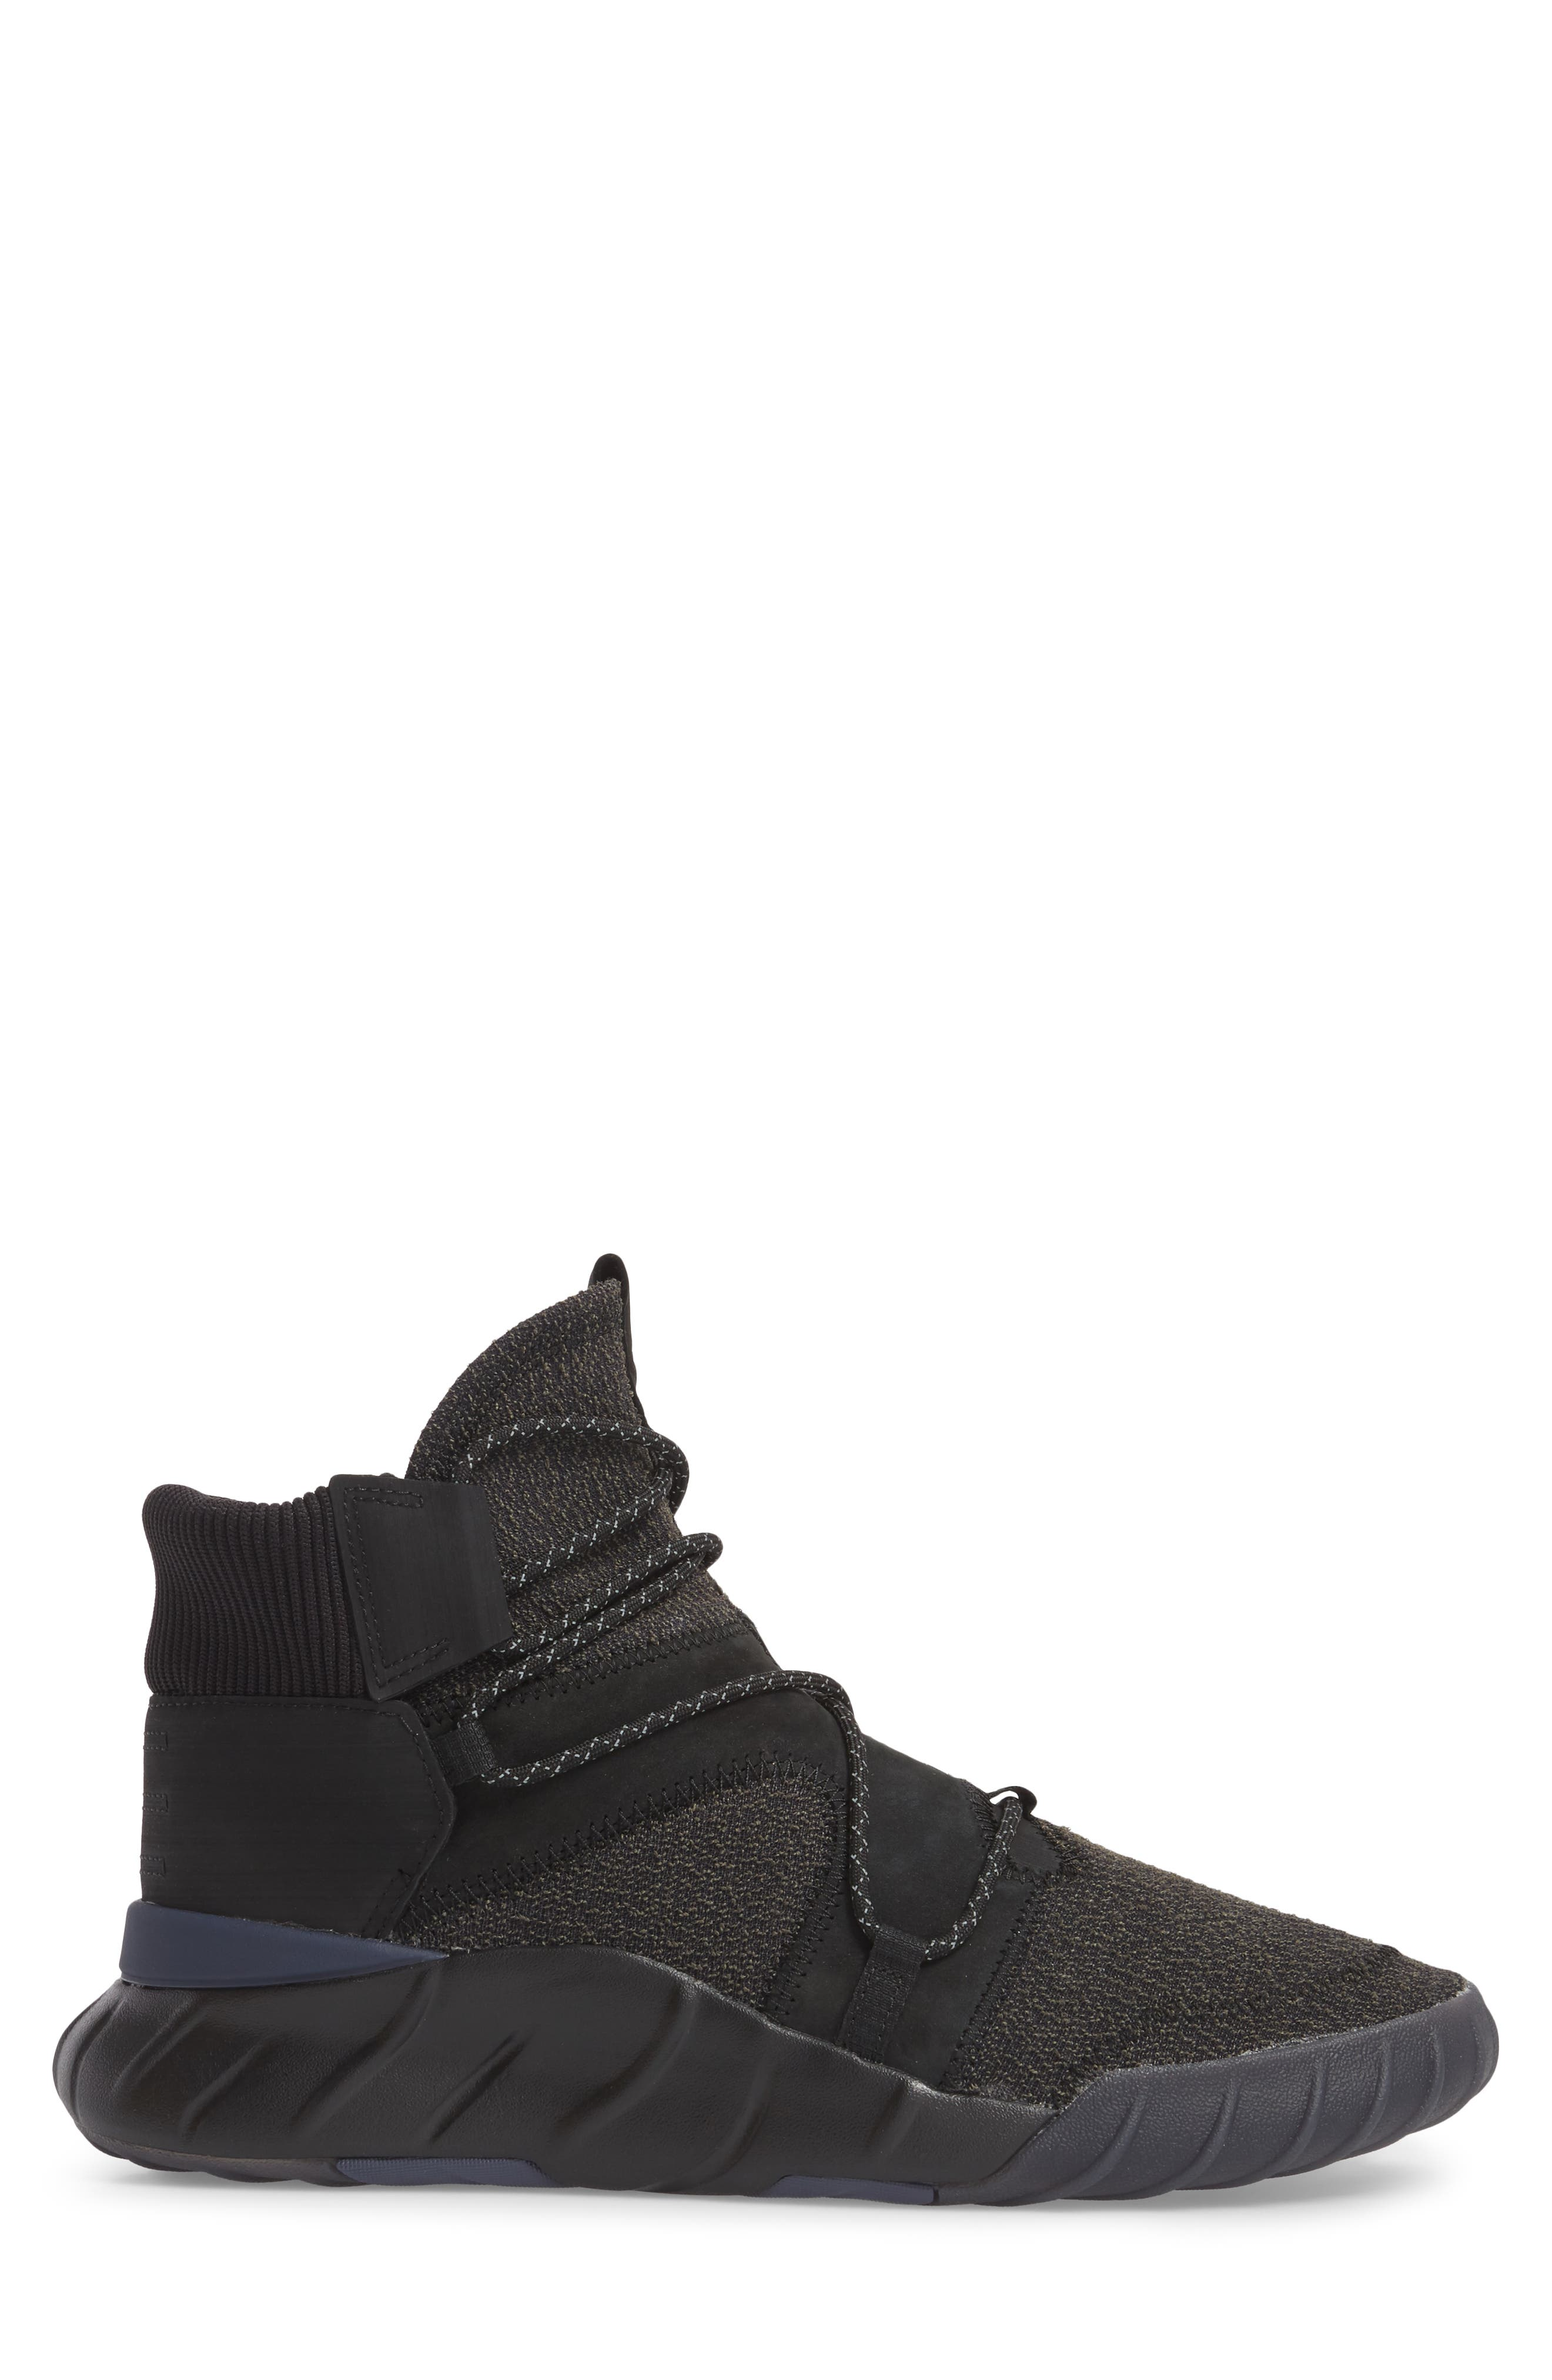 Tubular X 2.0 High Top Sneaker,                             Alternate thumbnail 3, color,